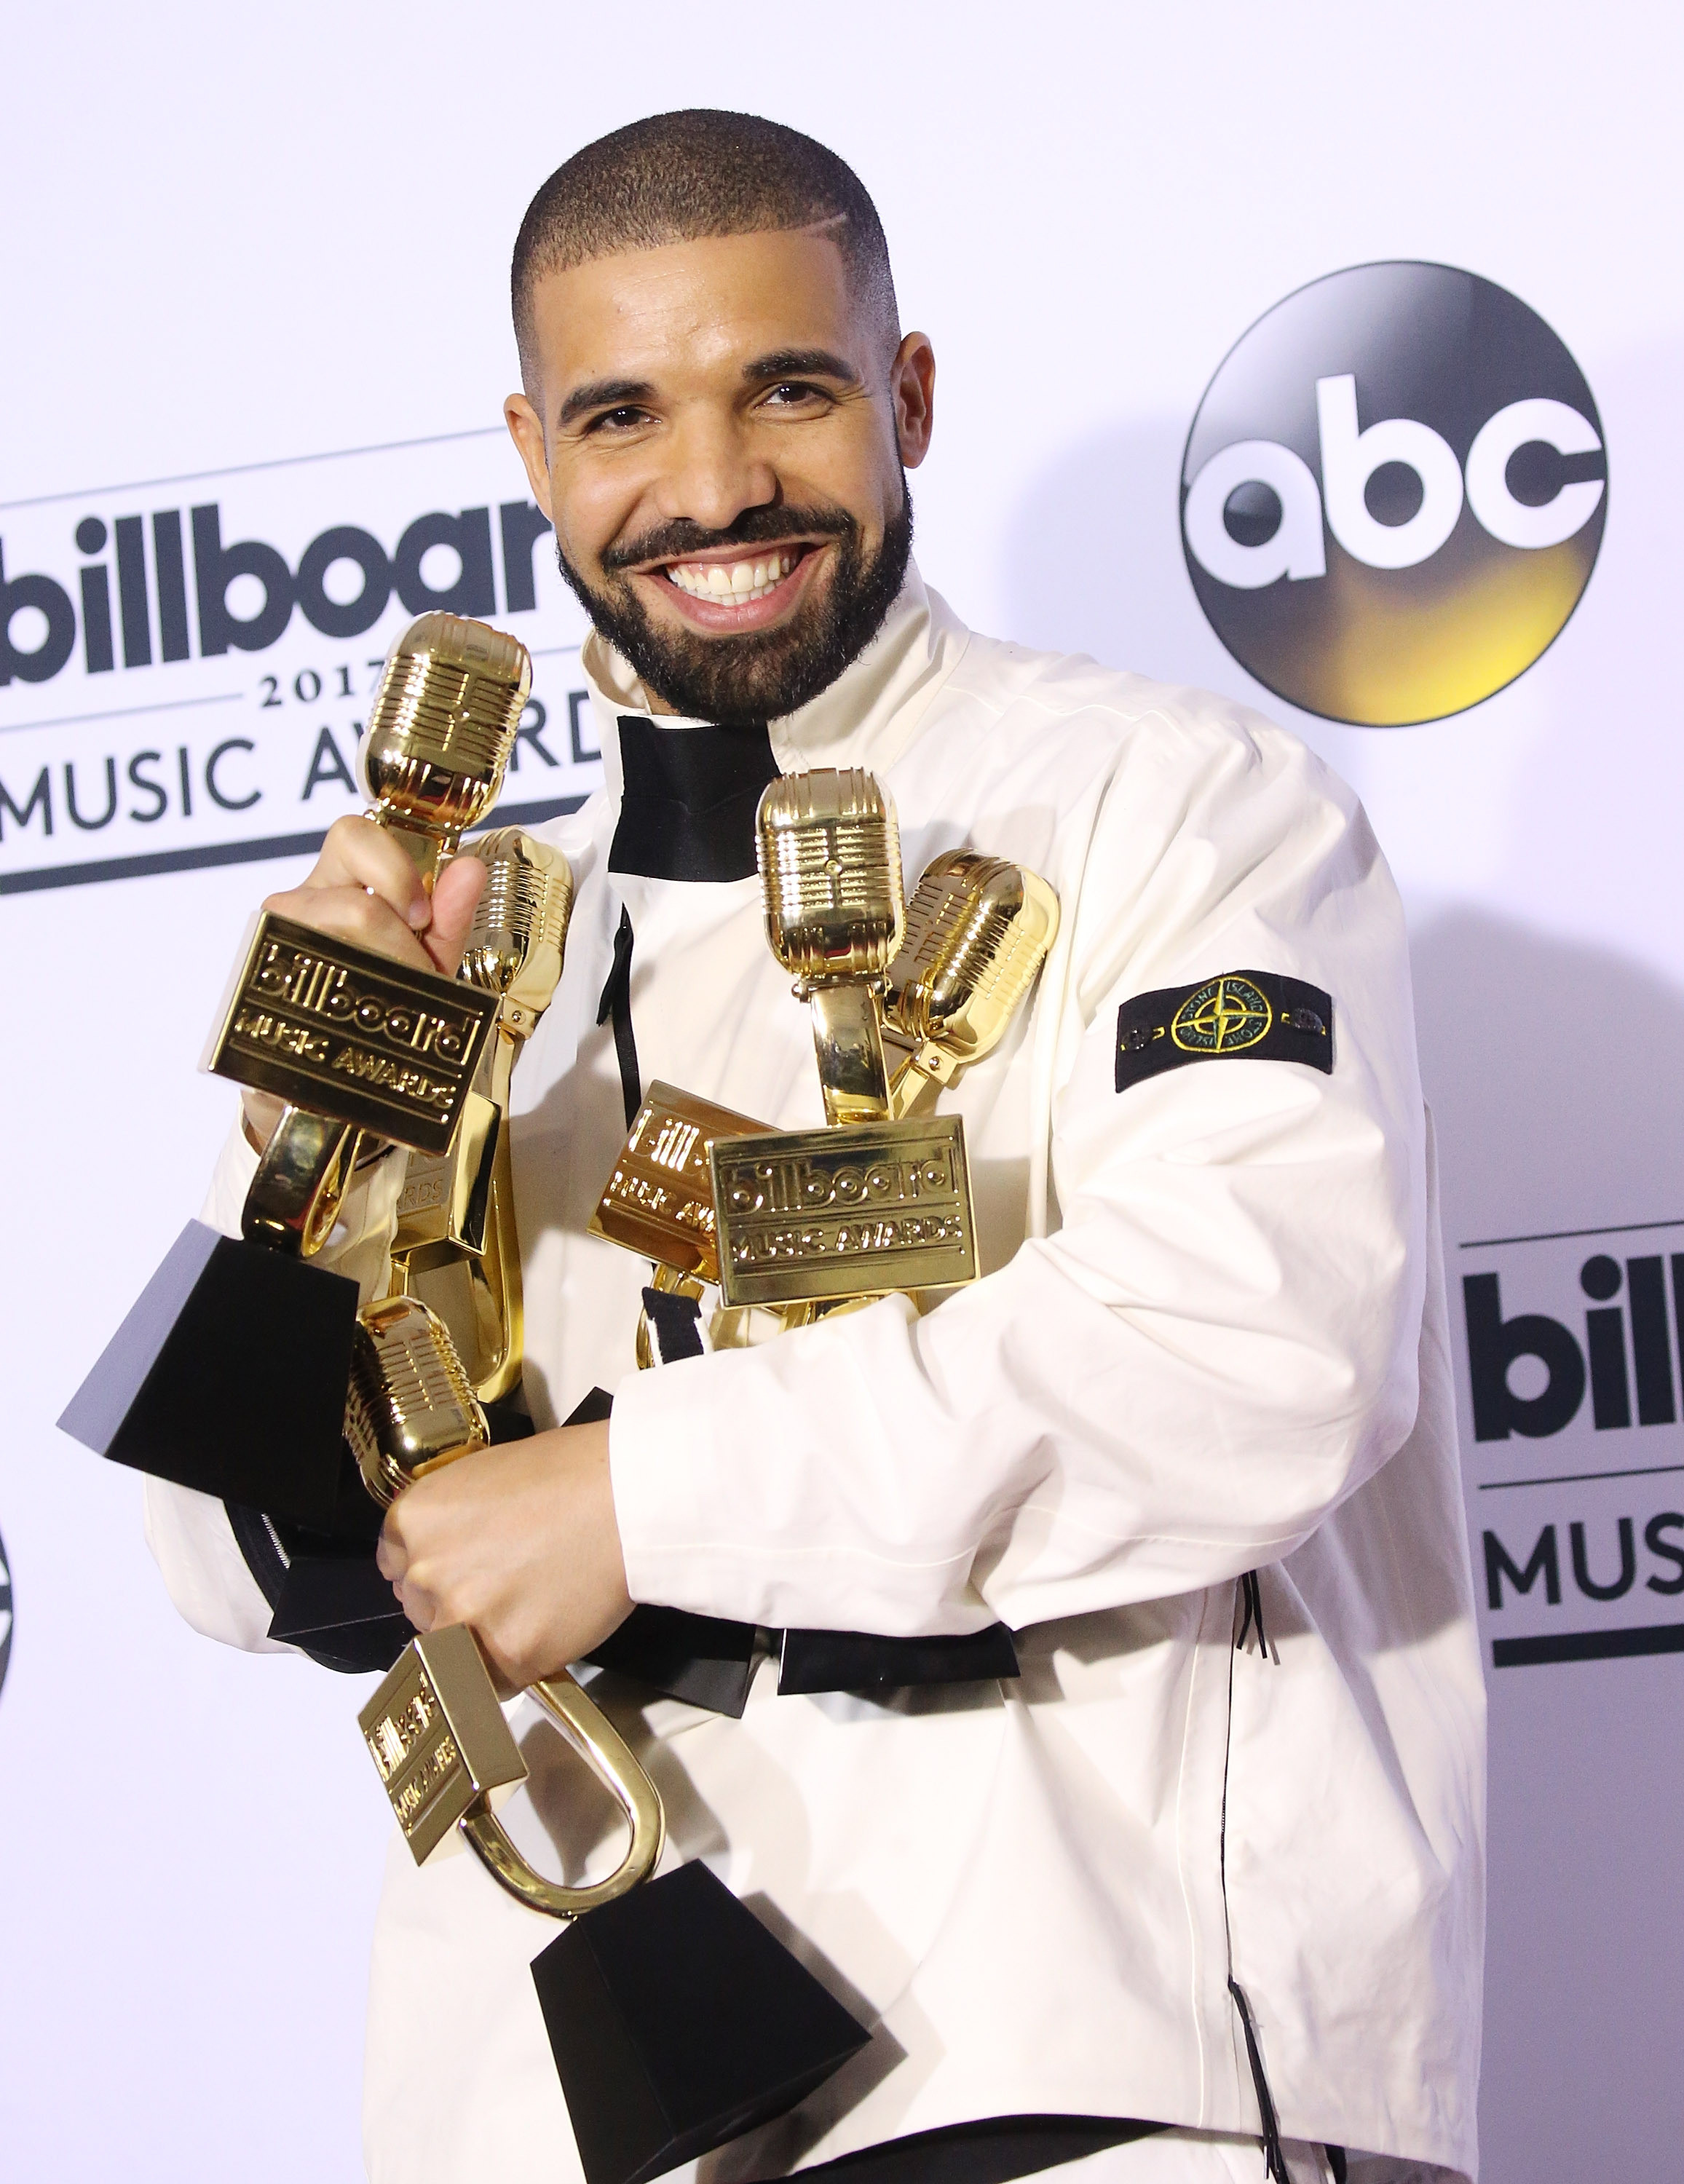 Drake revels in his winning-ness backstage at the Billboard Music Awards in Las Vegas